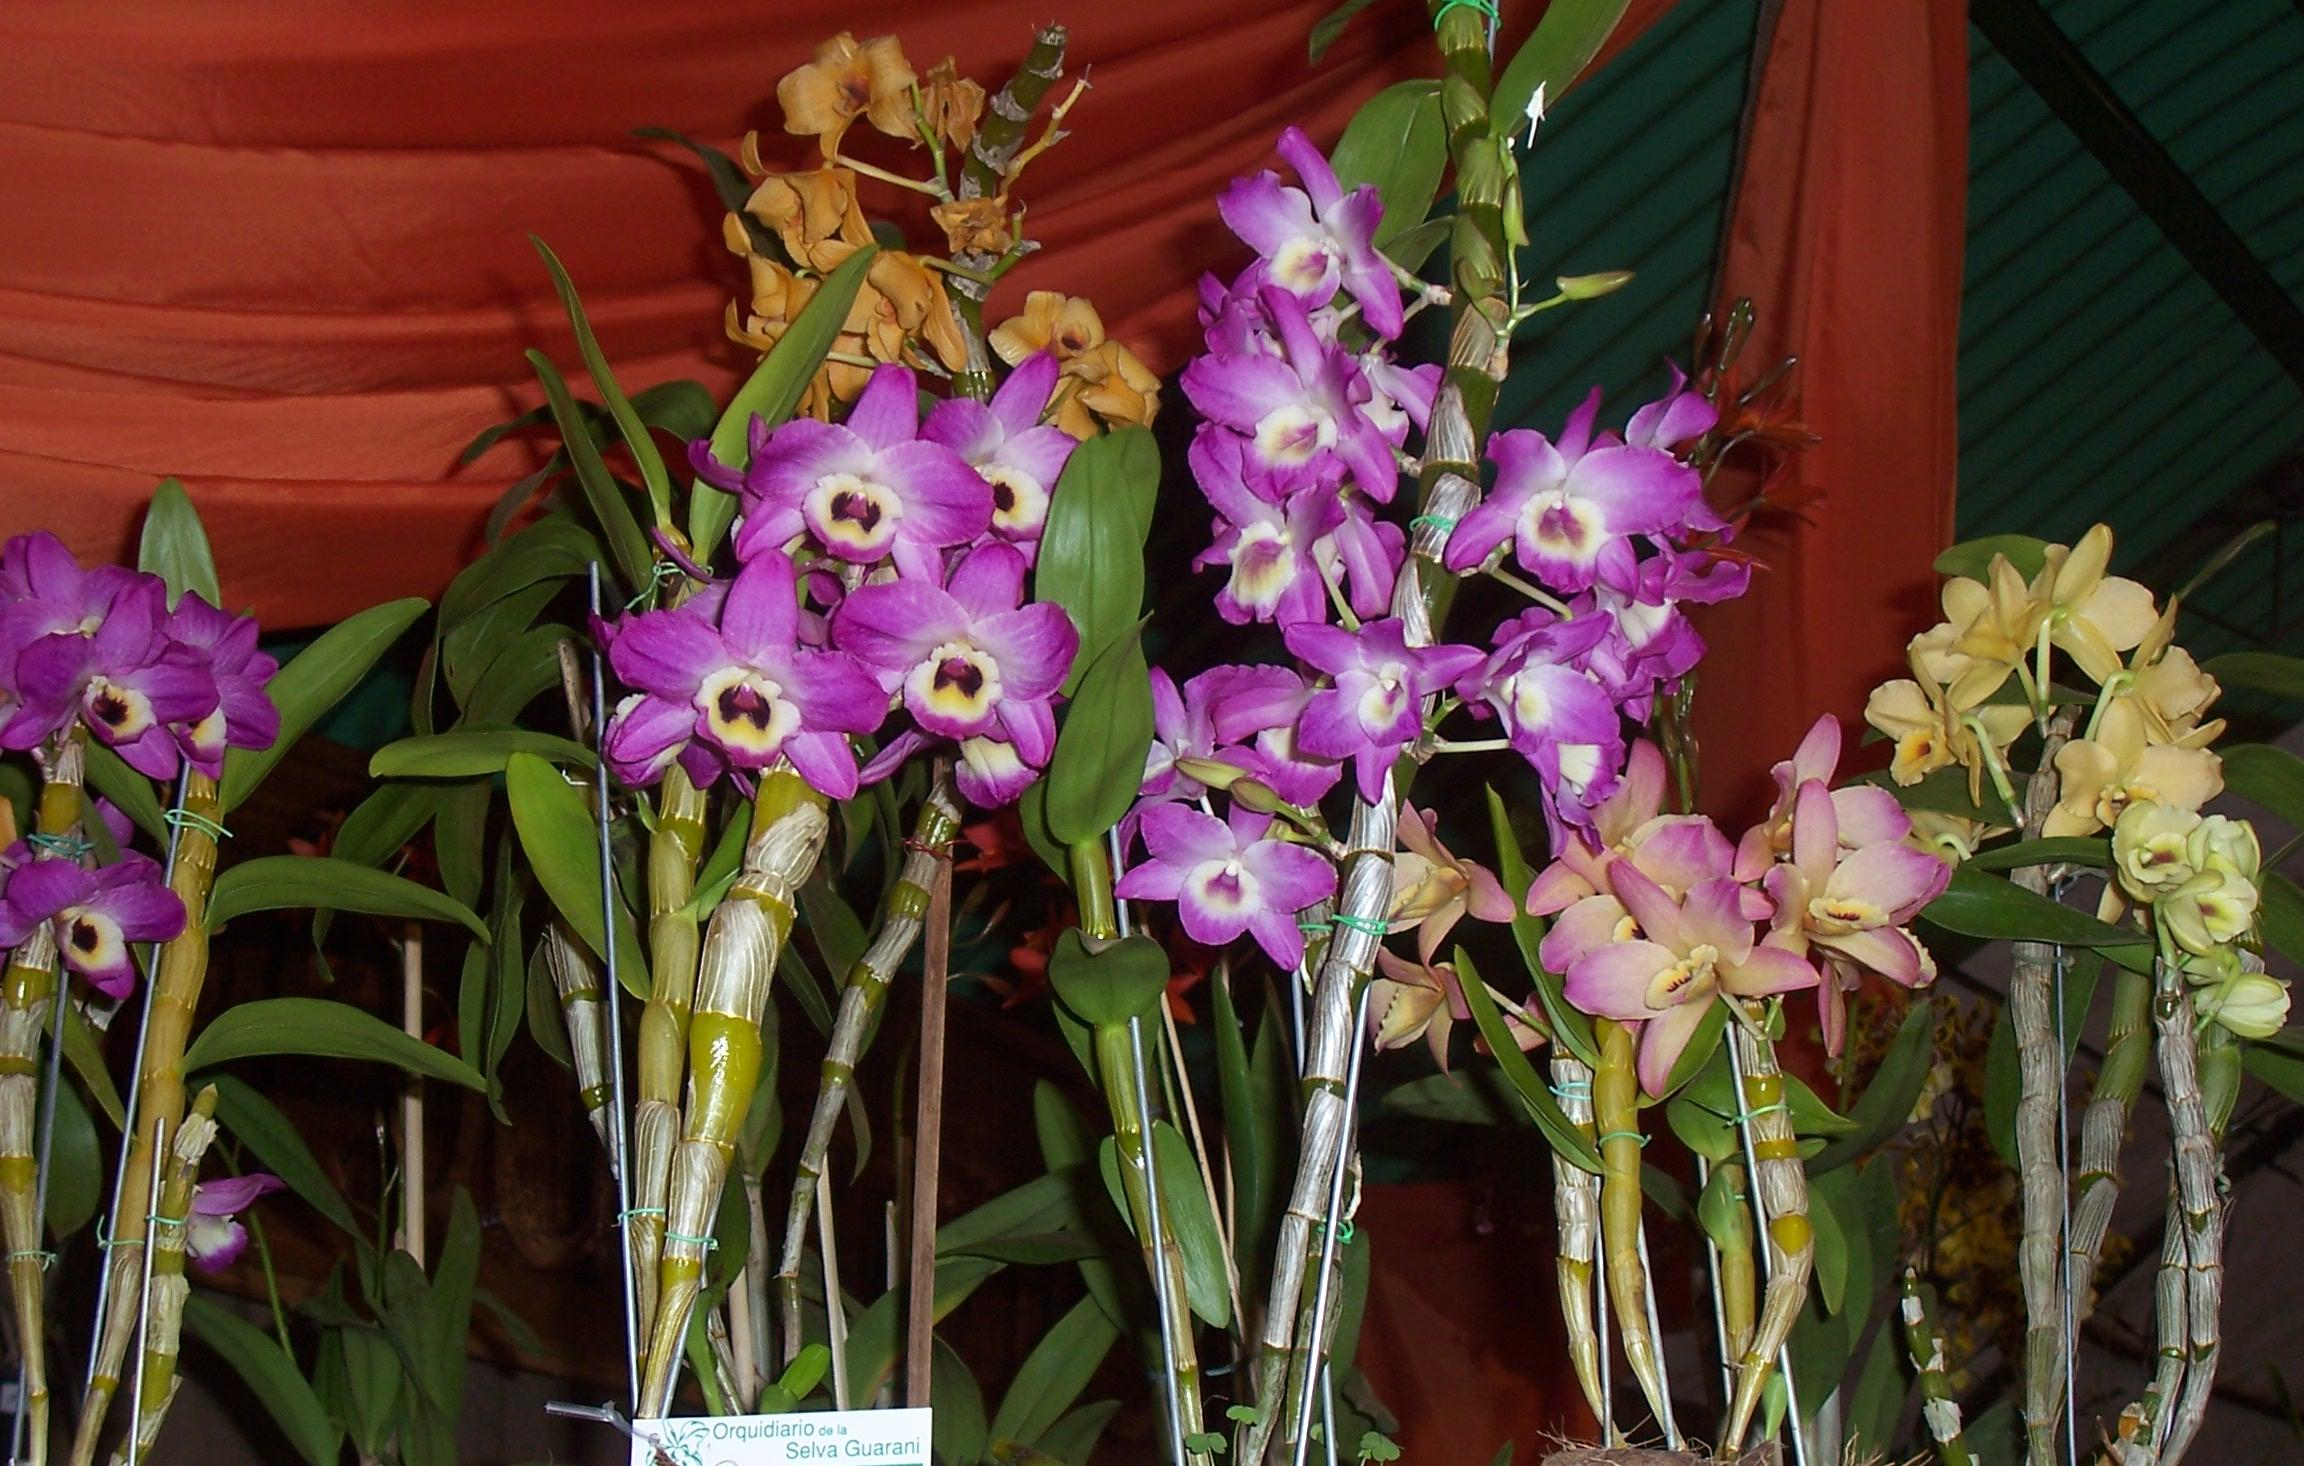 Lepanthes Calodictyon also Plants Gifting Ideas For Green Thumbs also Dendrobium jonesii further ORCH 011 6 6 013 also How To Grow Dendrobium Nobile. on dendrobium orchid care